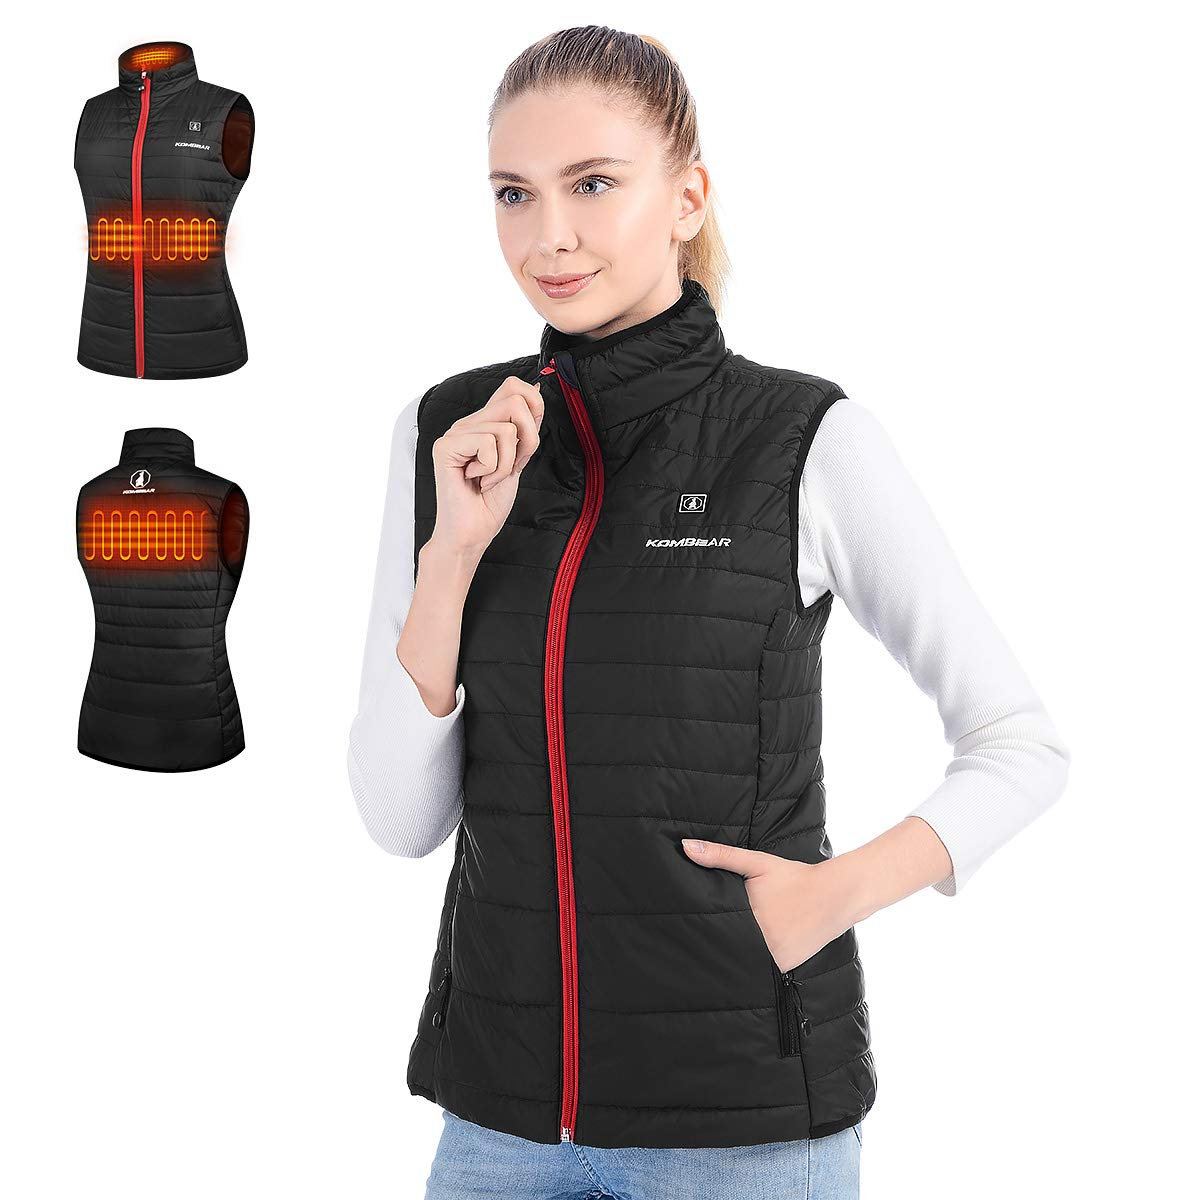 CLIMIX Women's Heated Vest, Lightweight Water Resistant Vest with Battery Pack Black by CLIMIX